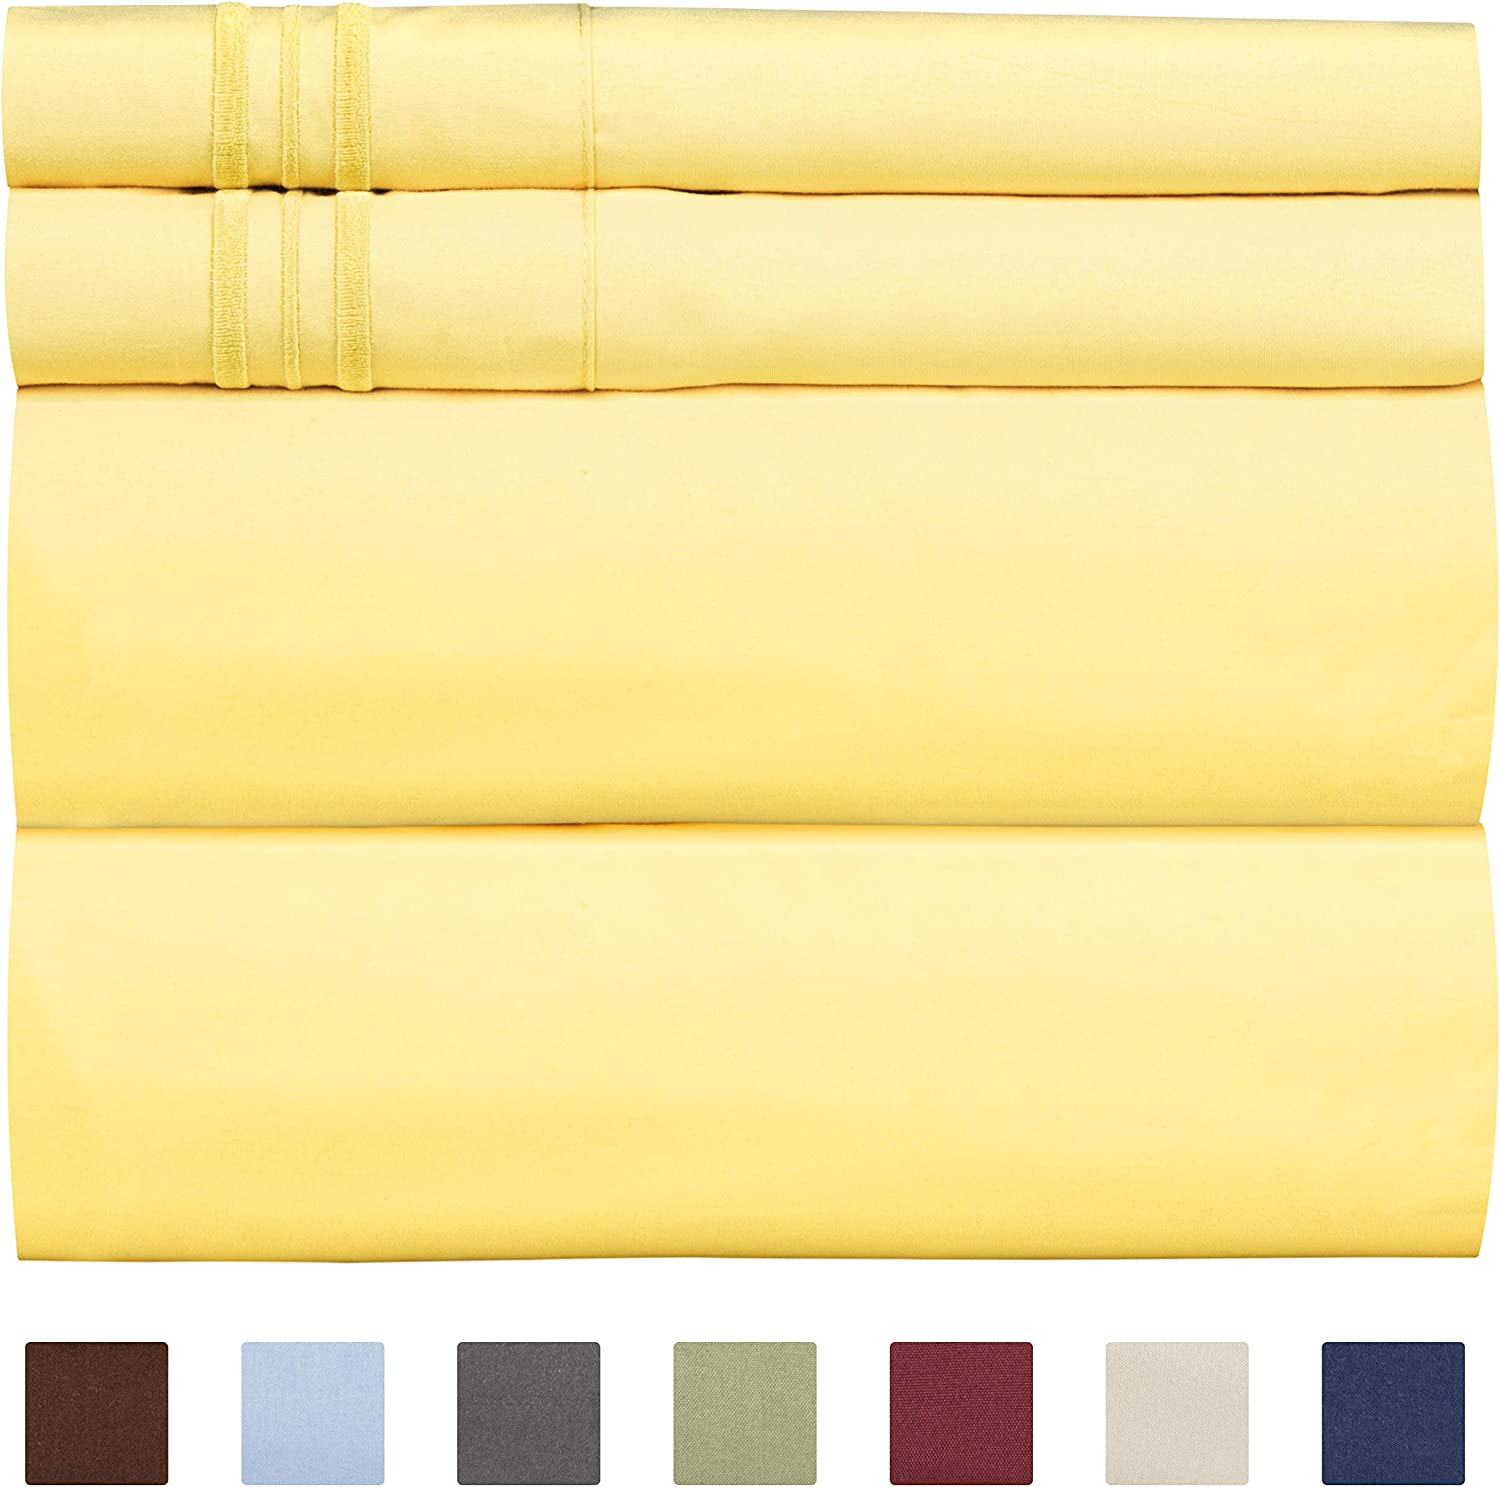 Full Size Sheet Set - 4 Piece - Hotel Luxury Bed Sheets - Extra Soft - Deep Pockets - Easy Fit - Breathable & Cooling Sheets - Wrinkle Free - Comfy – Yellow Bed Sheets - Fulls Sheets – 4 PC